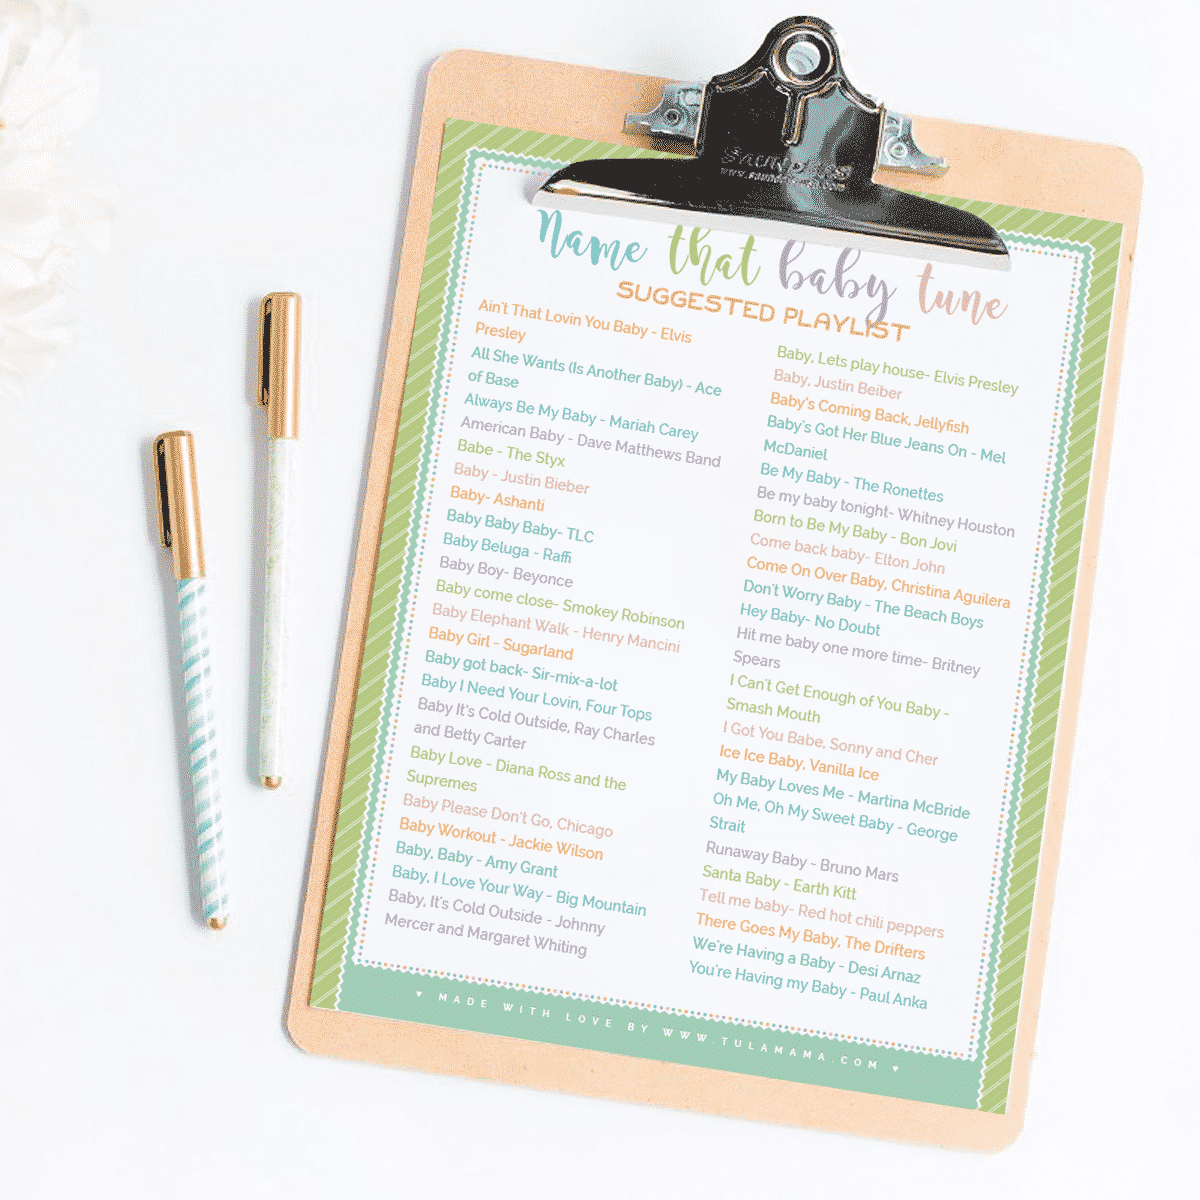 Name That Baby Tune Free Printable Baby Shower Game